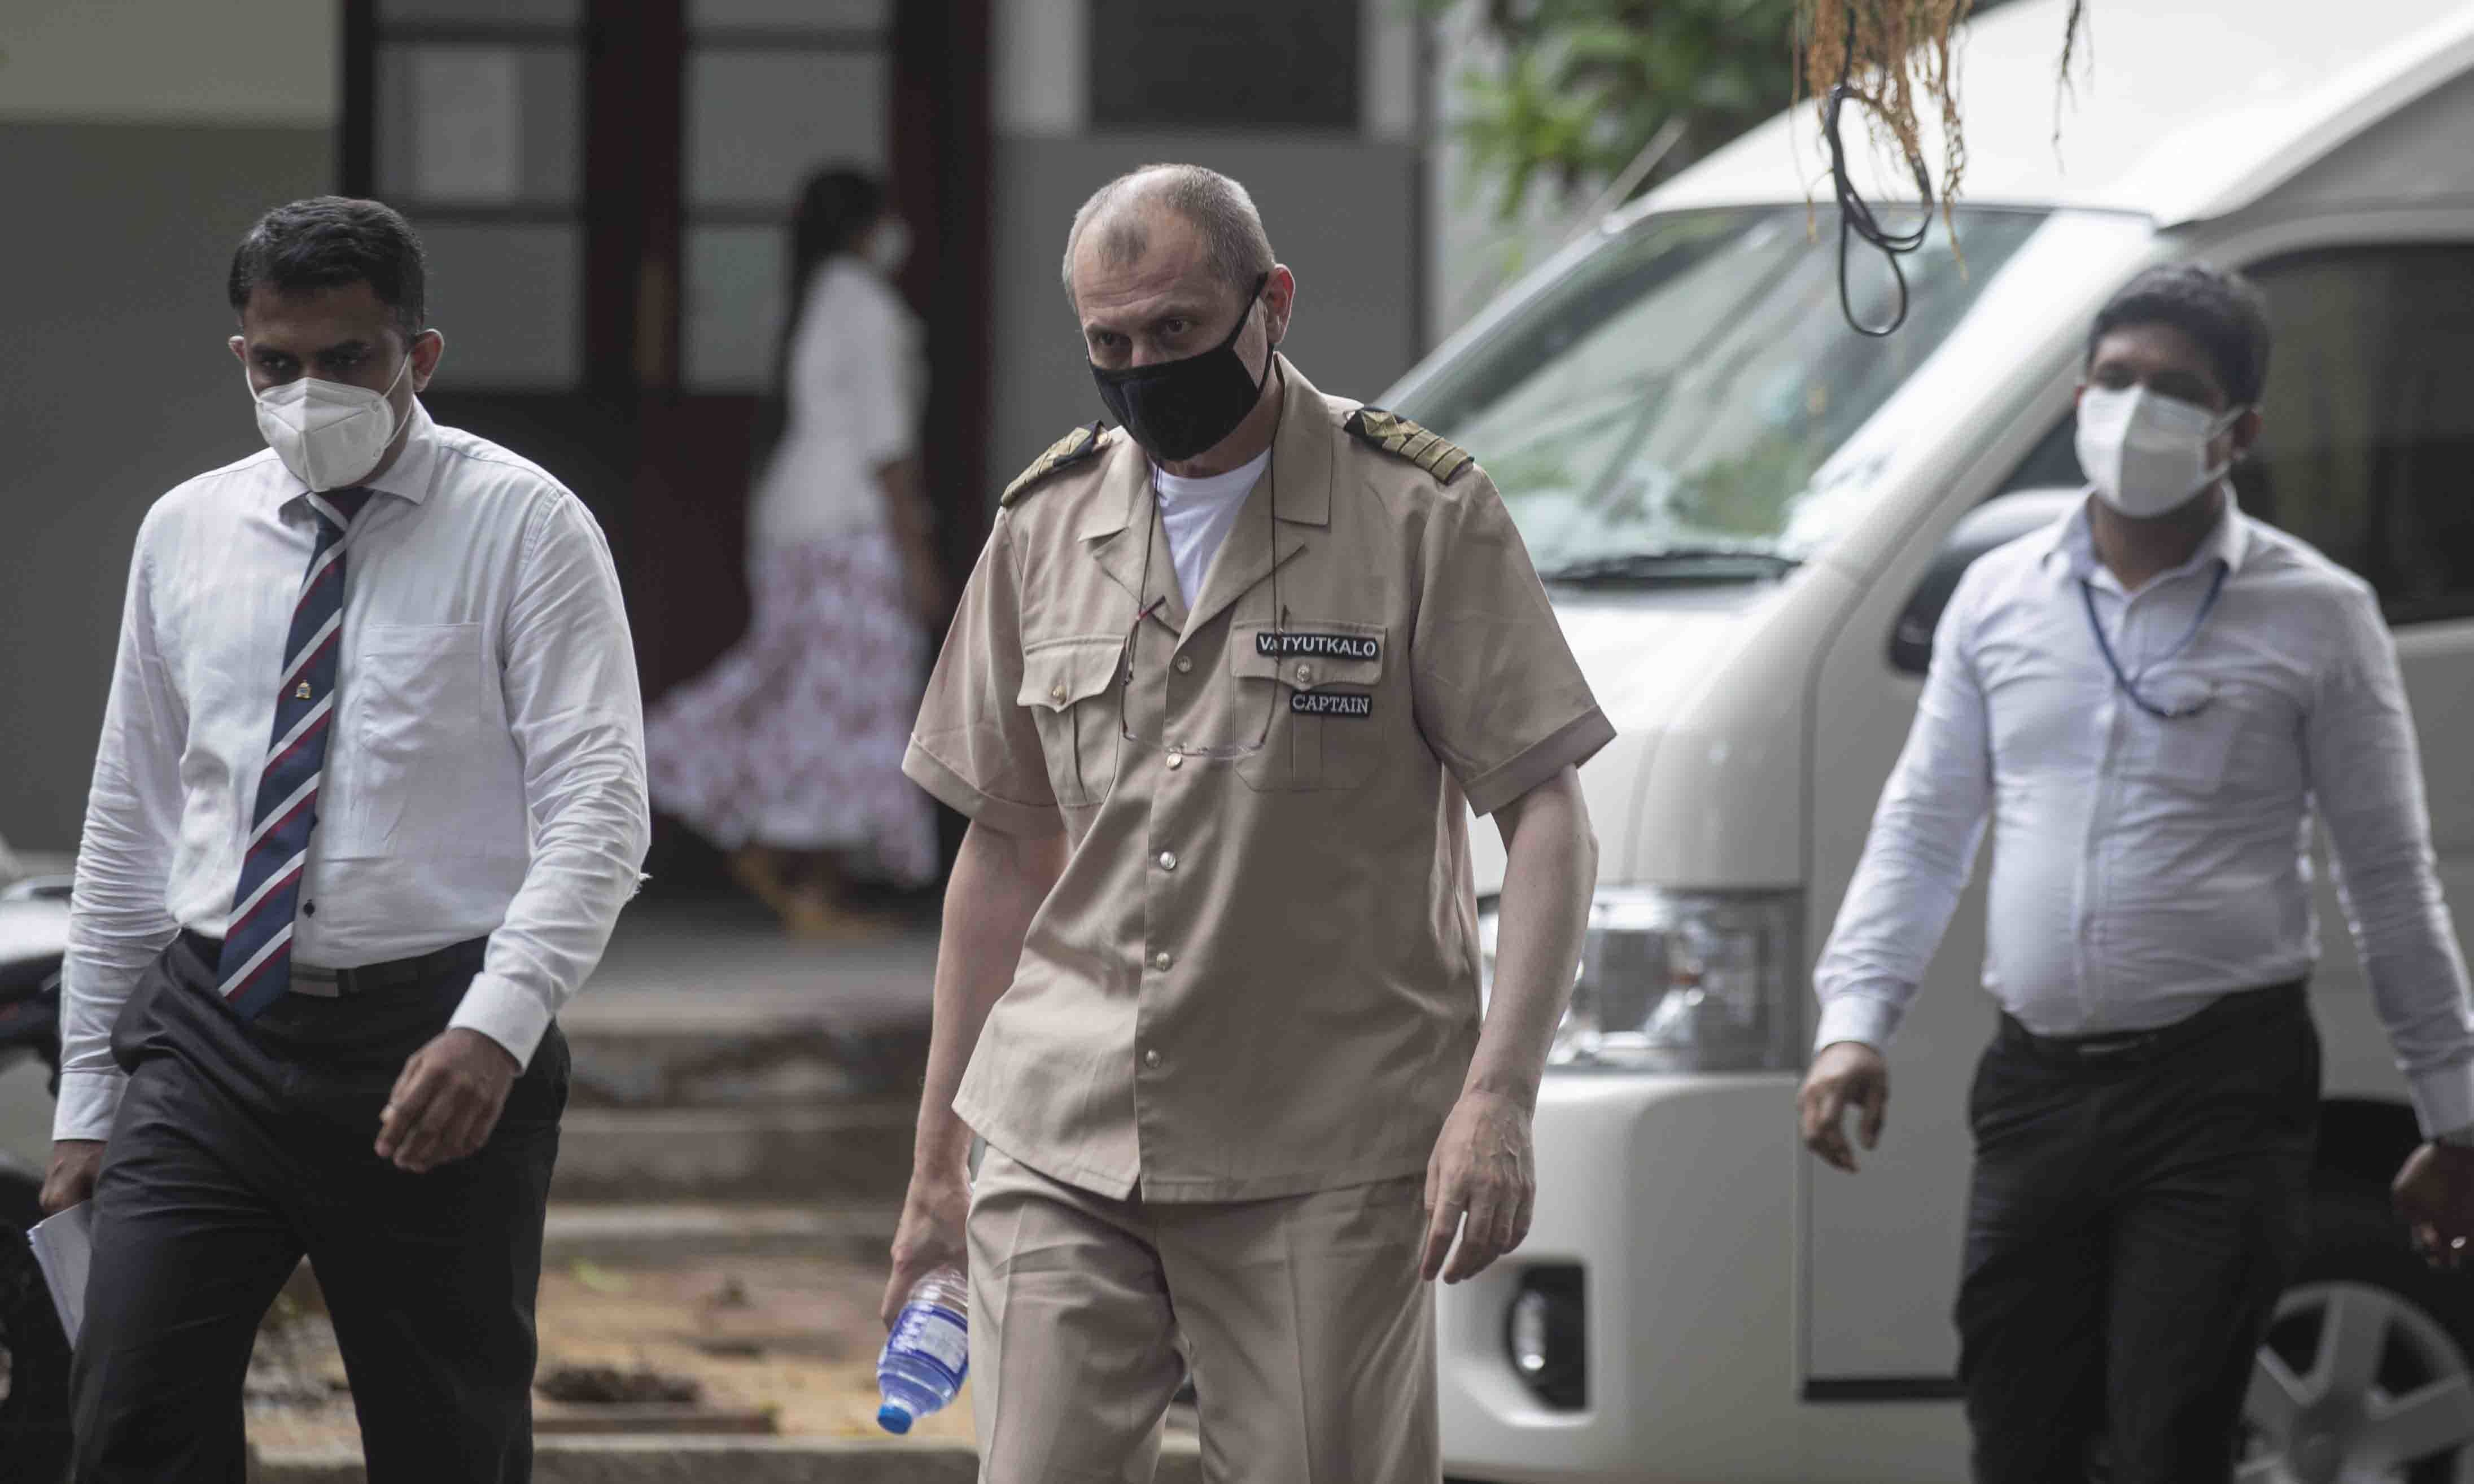 Sri Lankan police officers escort Russian Captain Tyutkalo Vitaly, center, of fire damaged container ship MV X-Press Pearl at a court before the hearing begins in Colombo on June 14. — AP